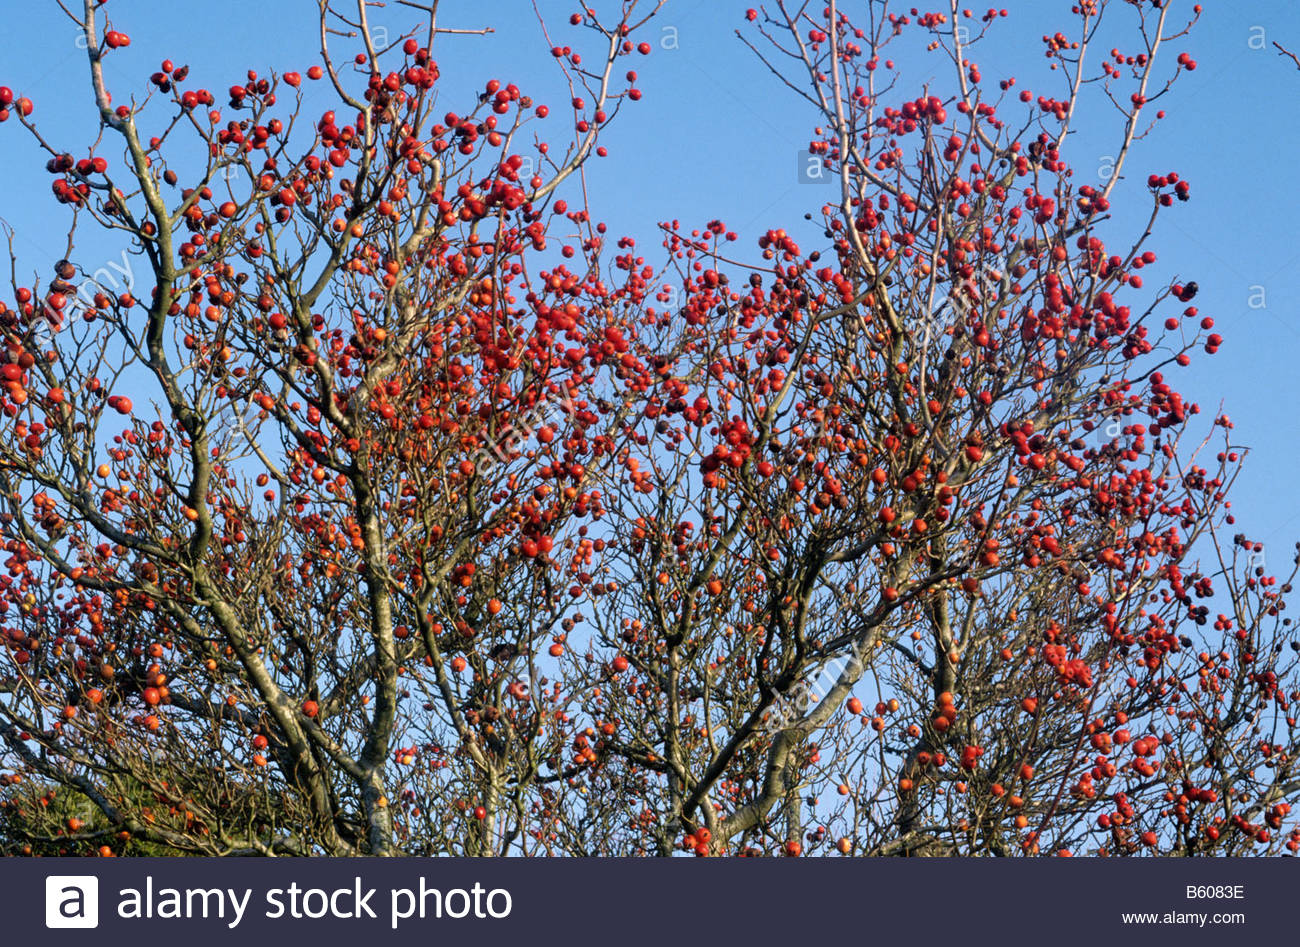 Crataegus X Lavallei Carrierei Stock Photo, Royalty Free Image.